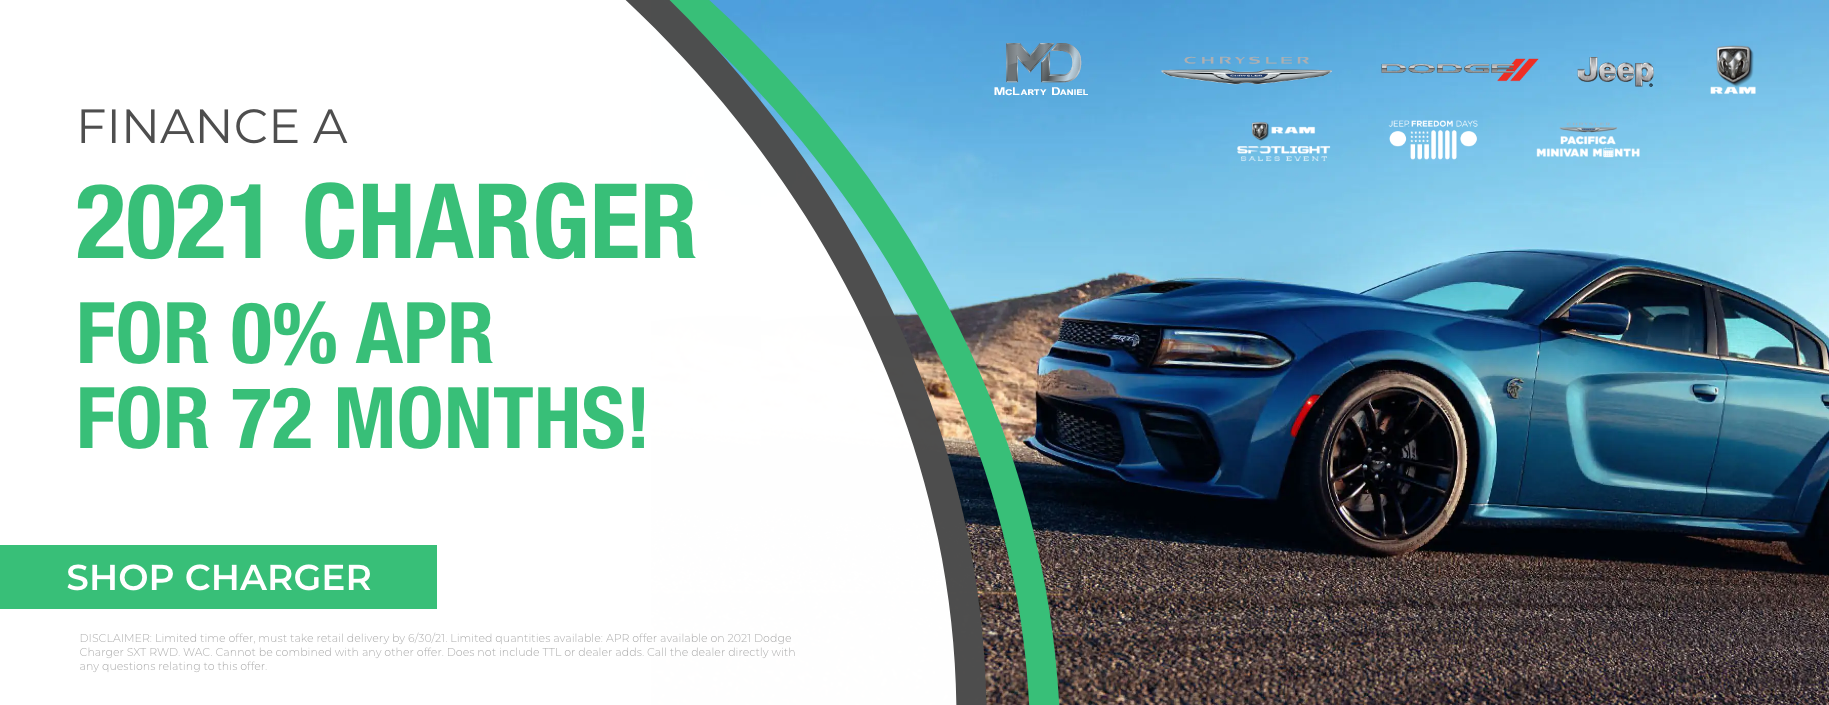 Finance a 2021 Charger for 0% APR for 72 months!